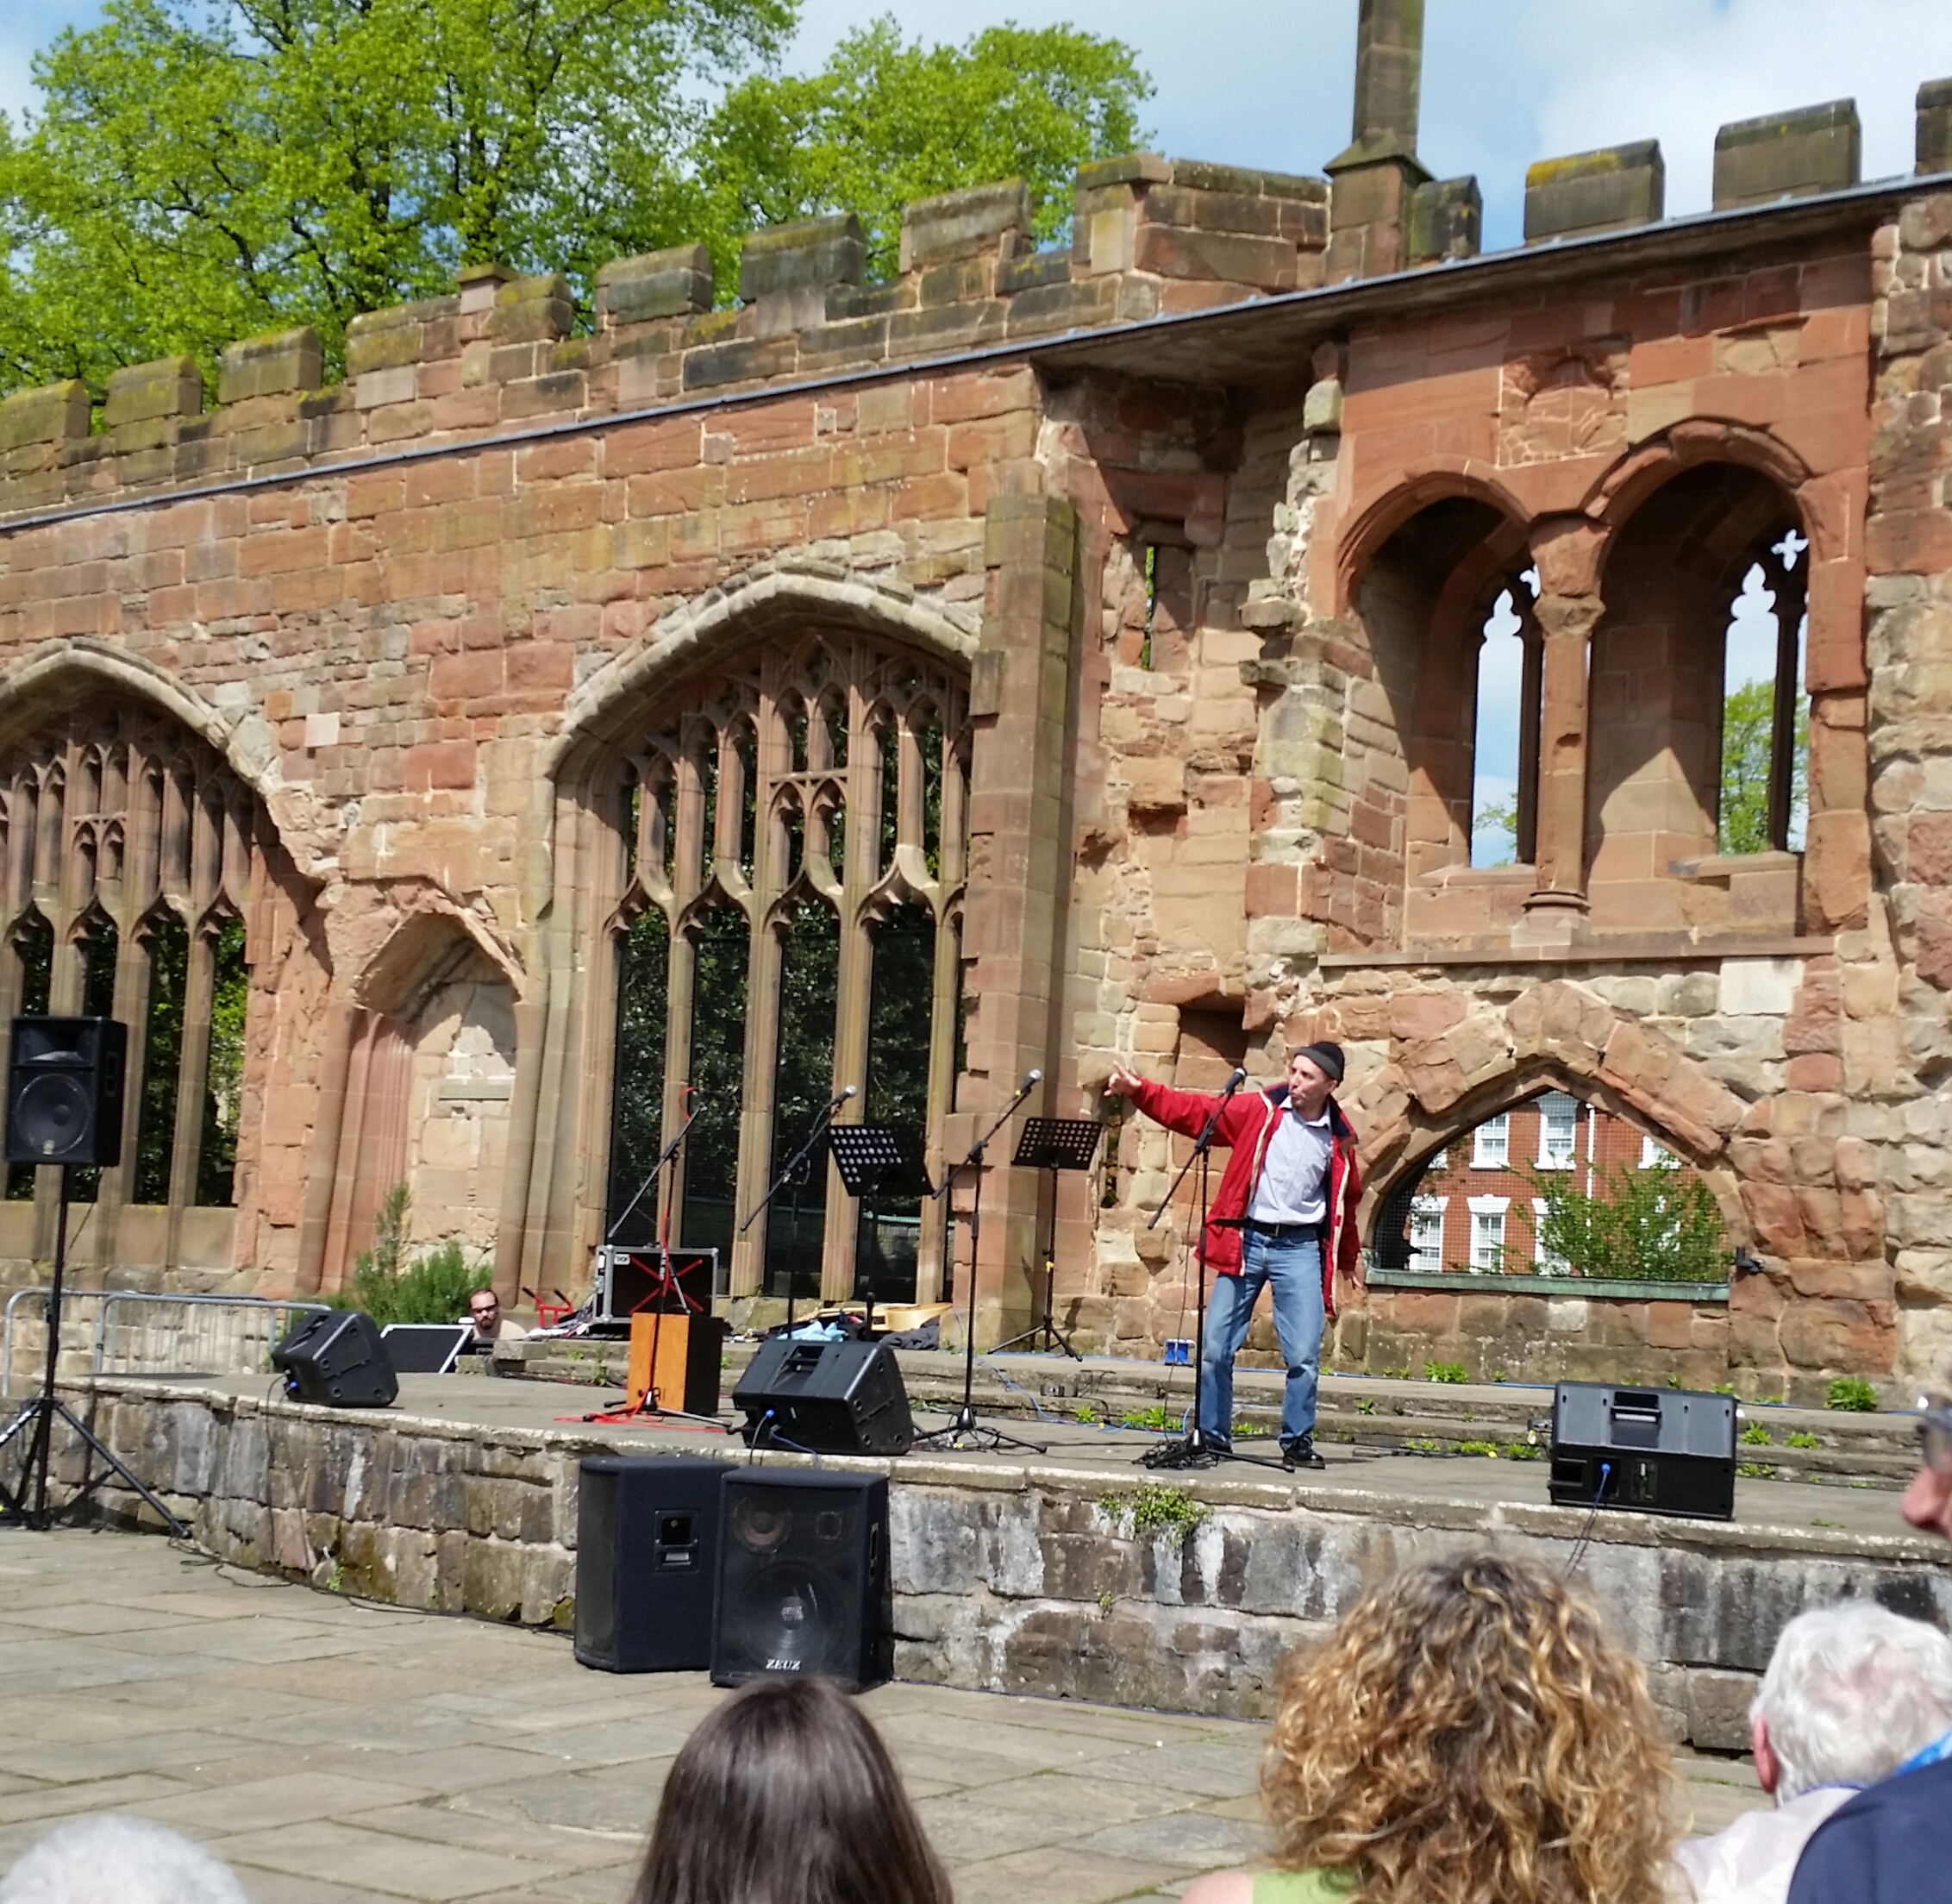 Drama at Coventry Cathedral 5 May 2018